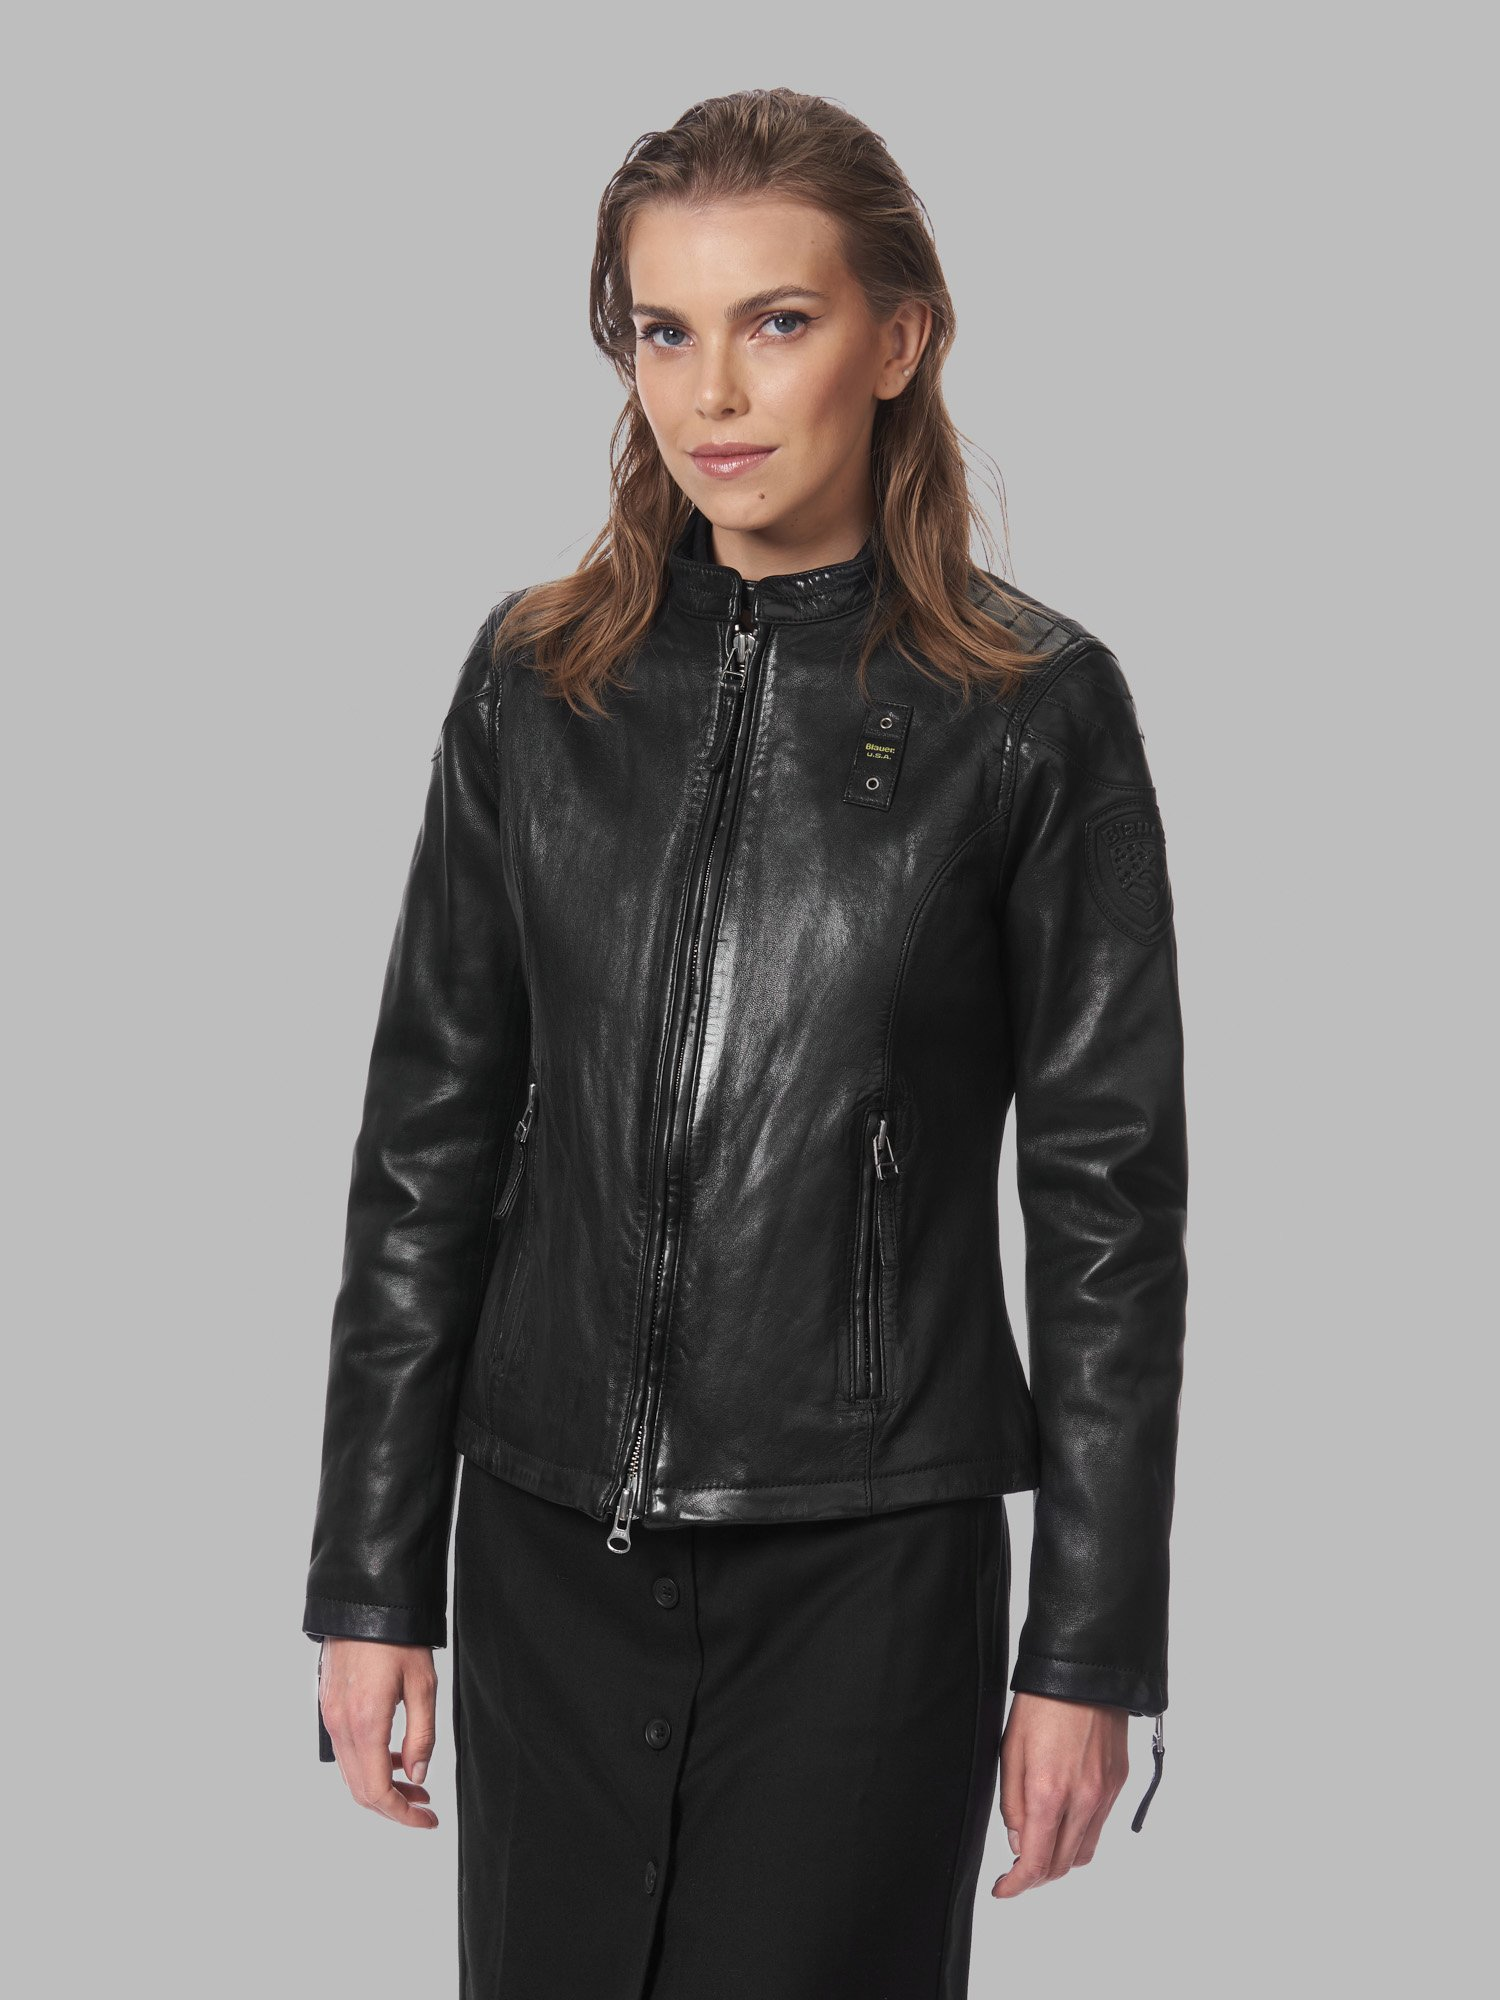 CATHY LEATHER JACKET - Blauer